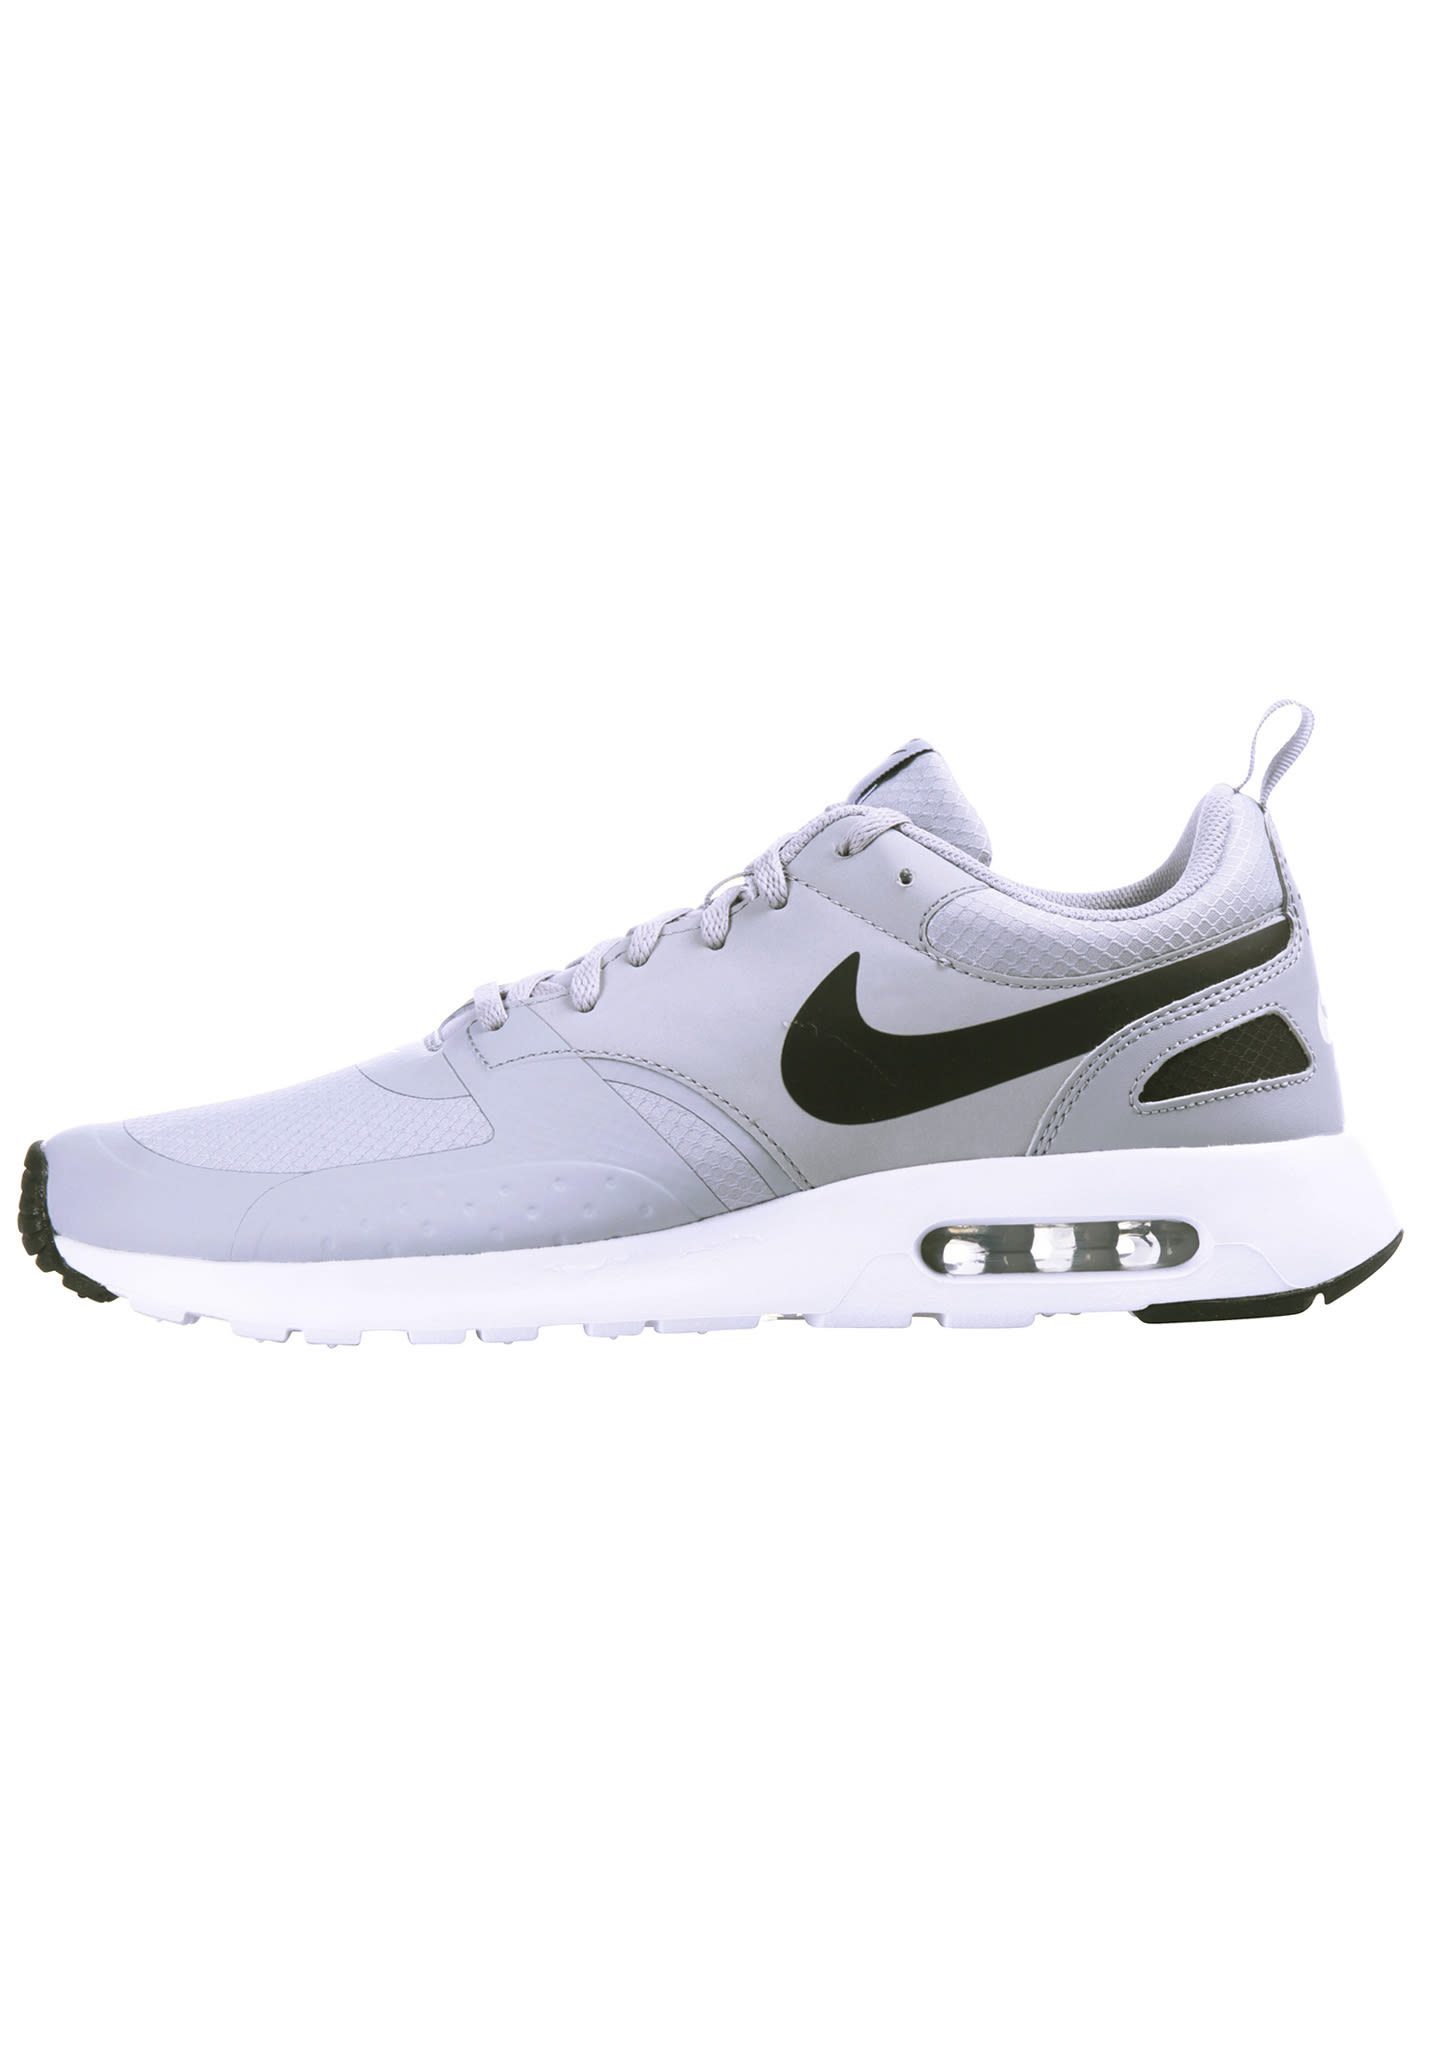 d8902f44456 NIKE SPORTSWEAR Air Max Vision SE - Sneakers for Men - Grey - Planet Sports